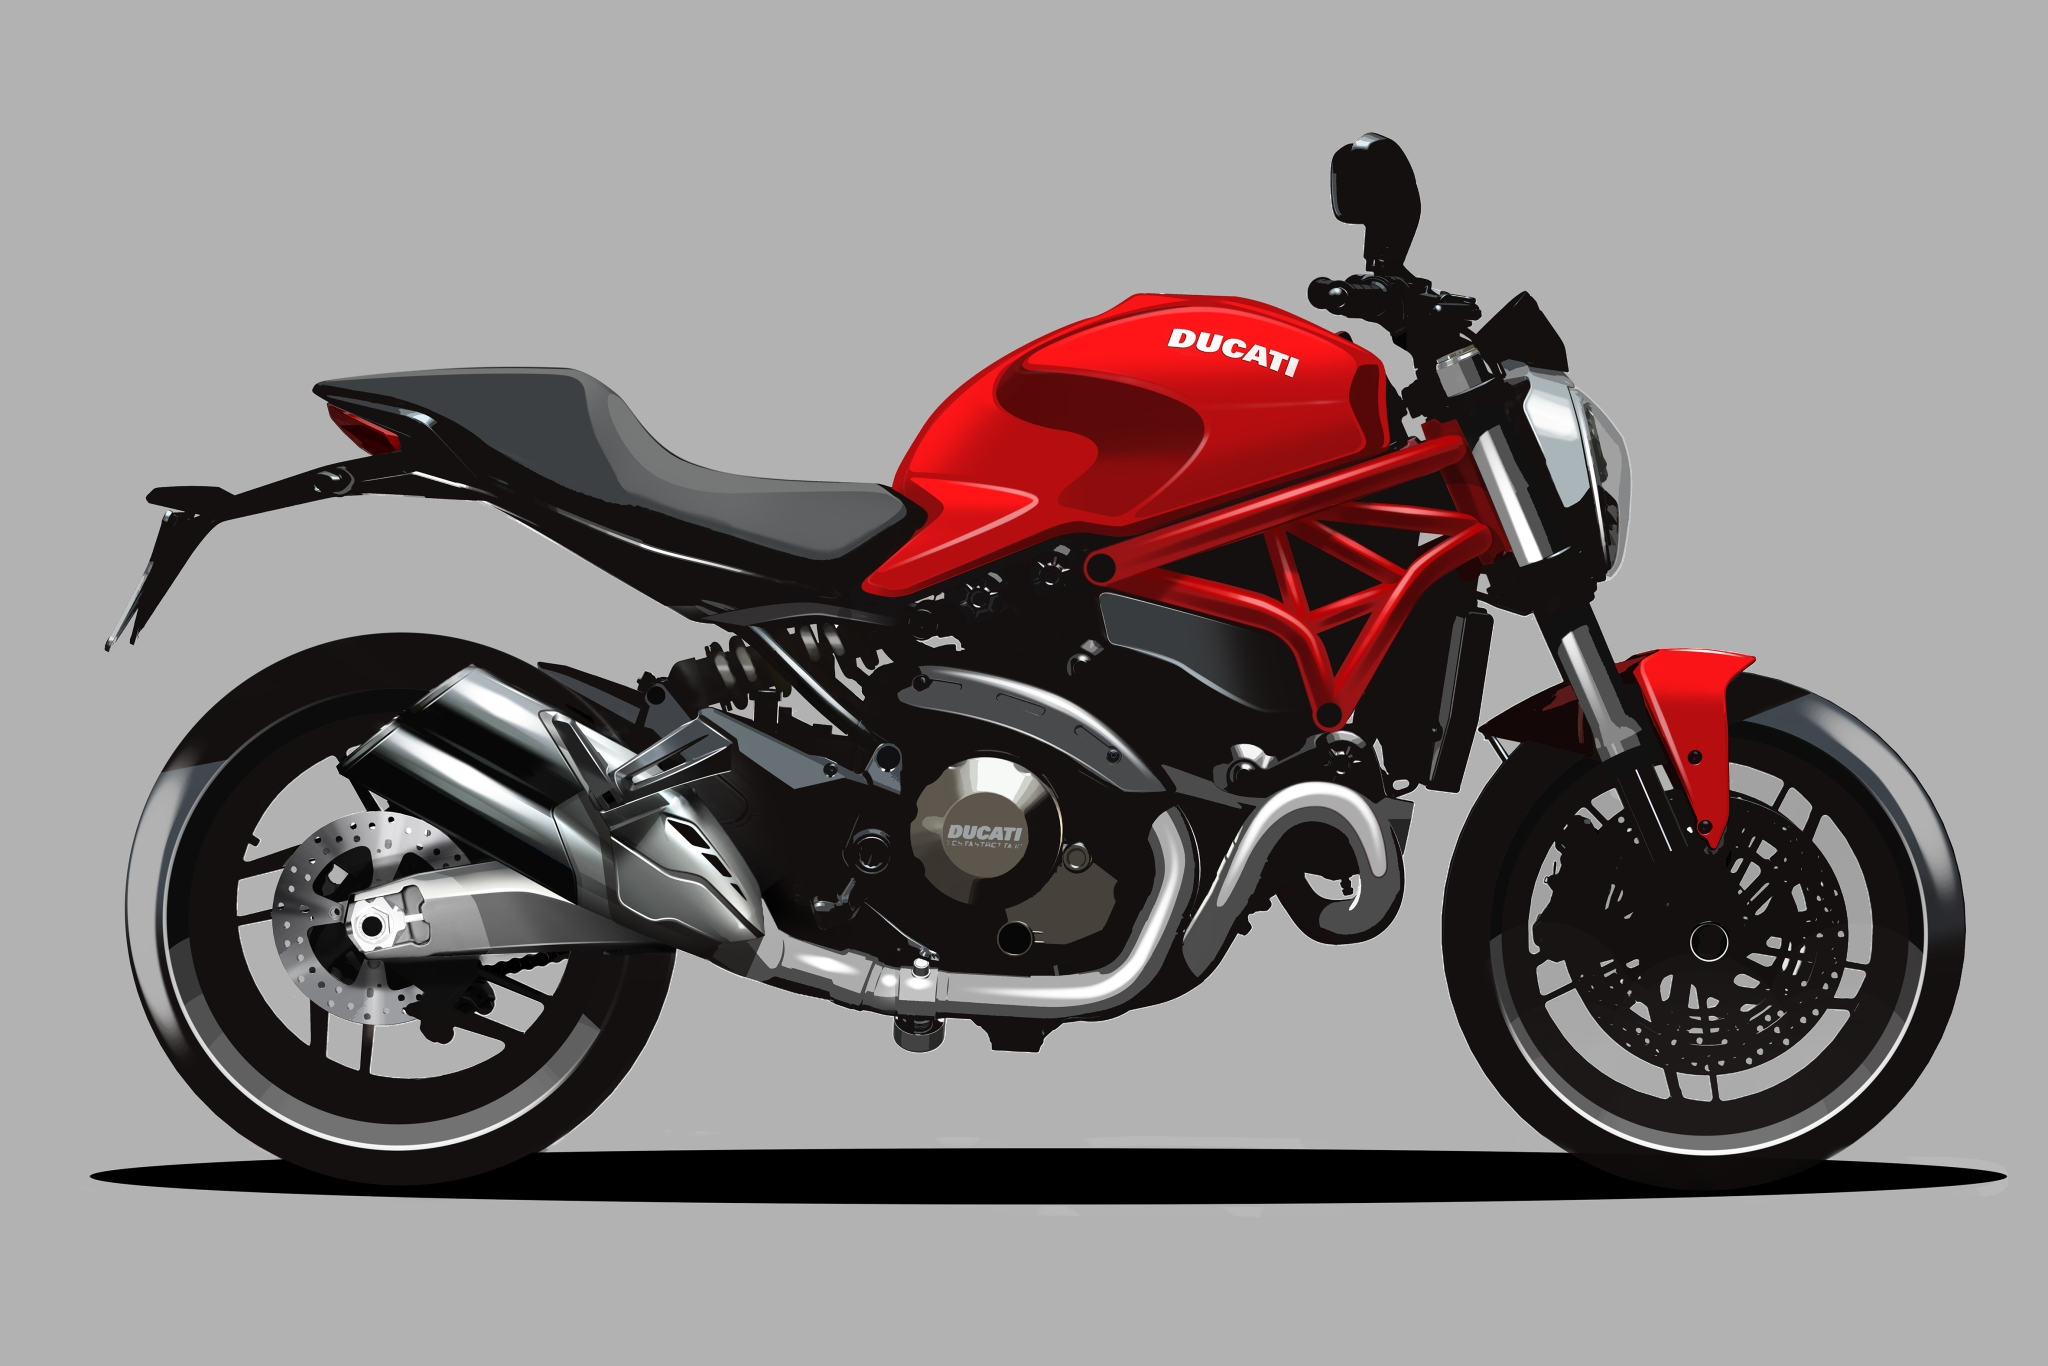 Ducati Monster 821 images #79378